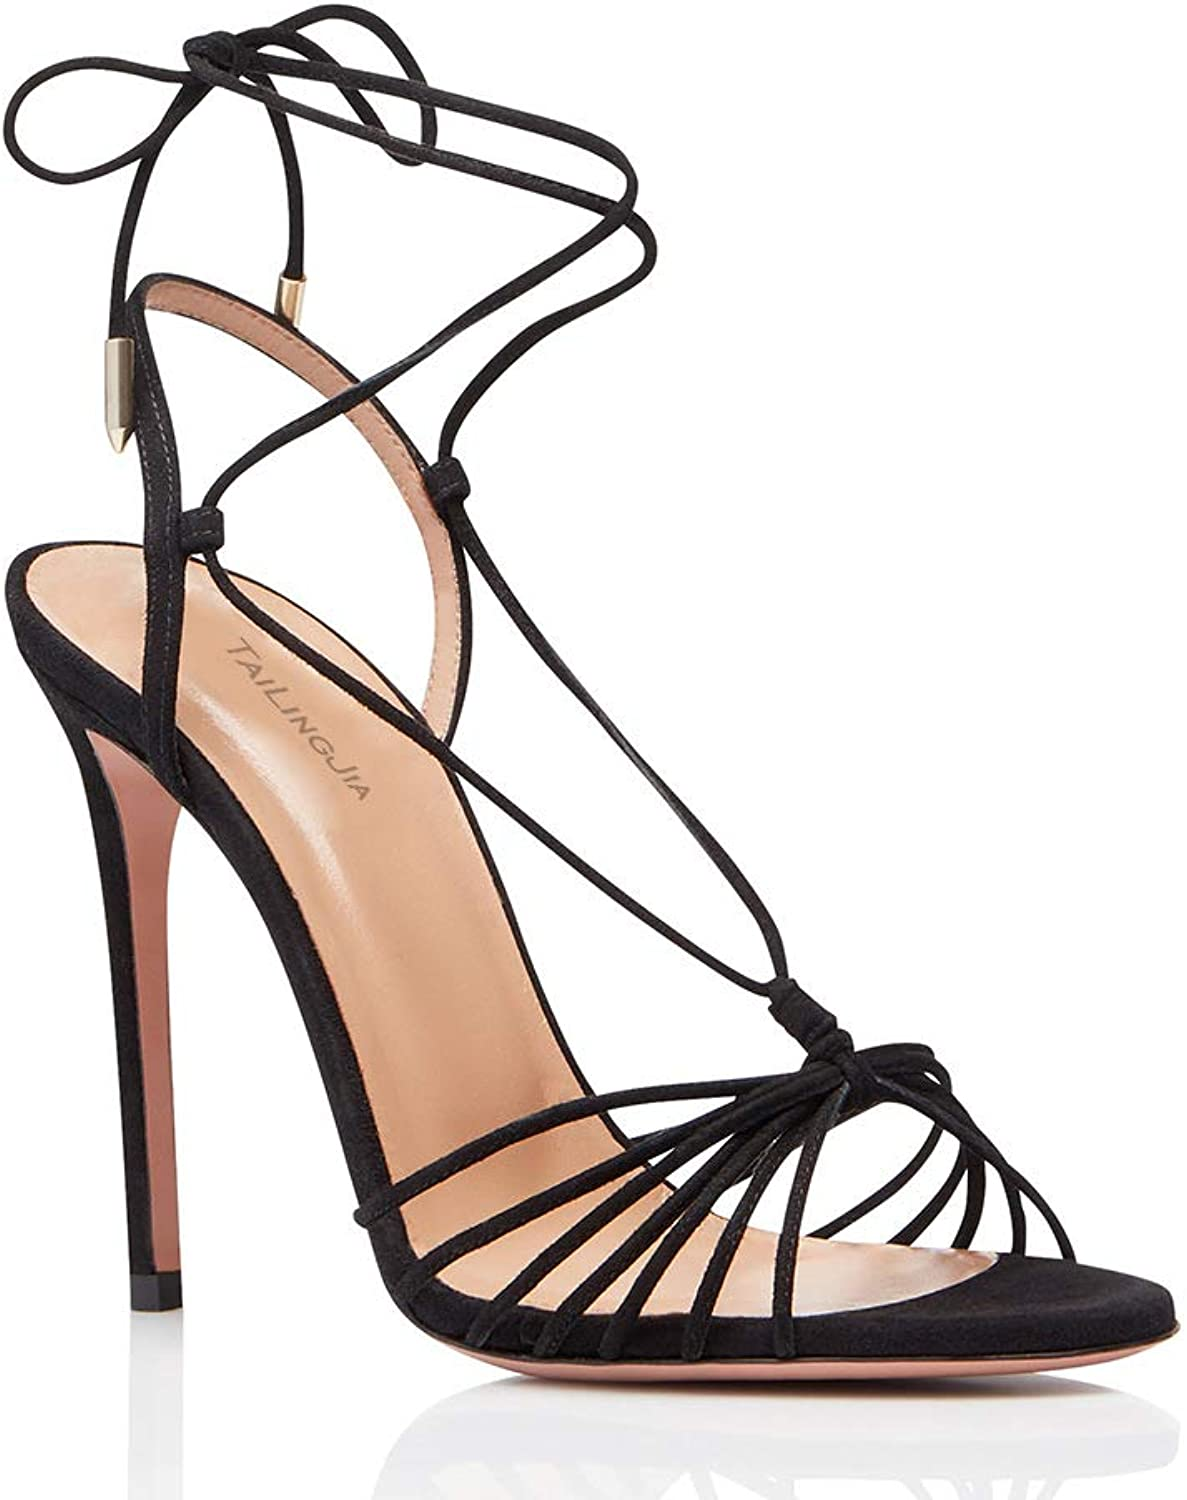 Women's Black Sexy Thin Belt Combination High Heel Sandals for Wedding, Evening Party, Prom, Cocktail Party